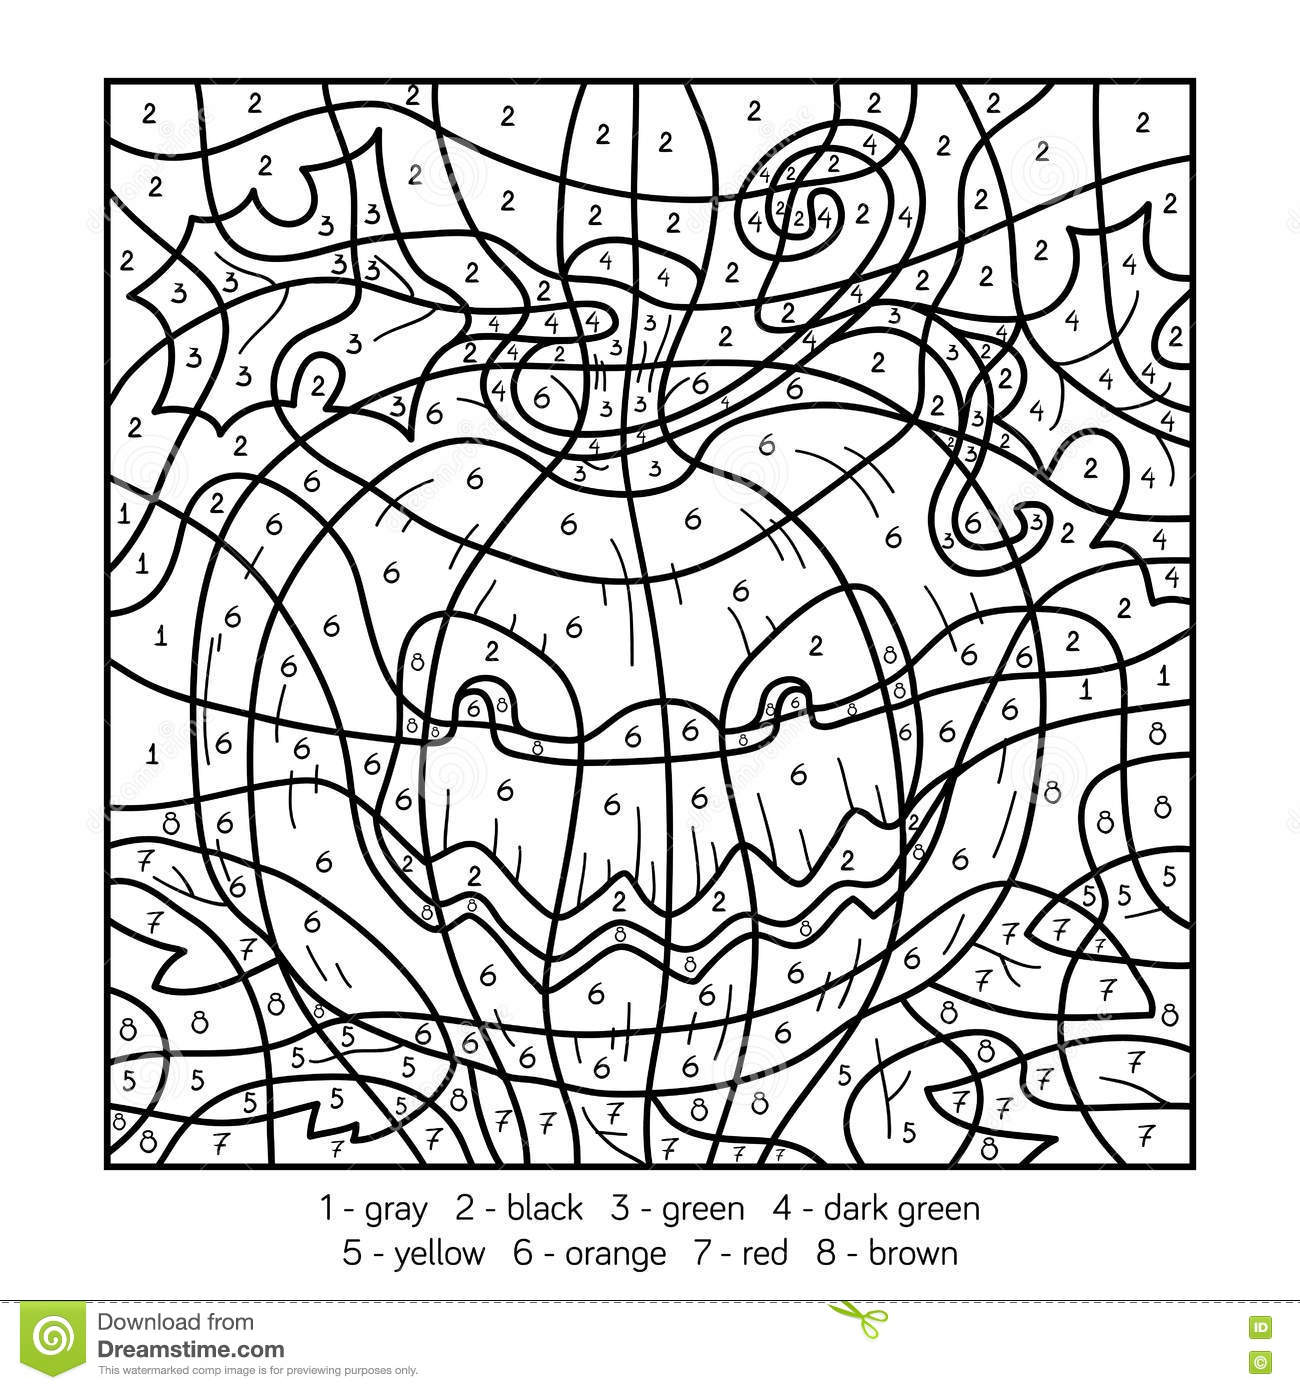 halloween coloring pages color by number | Color By Number, Halloween Pumpkin Stock Vector ...